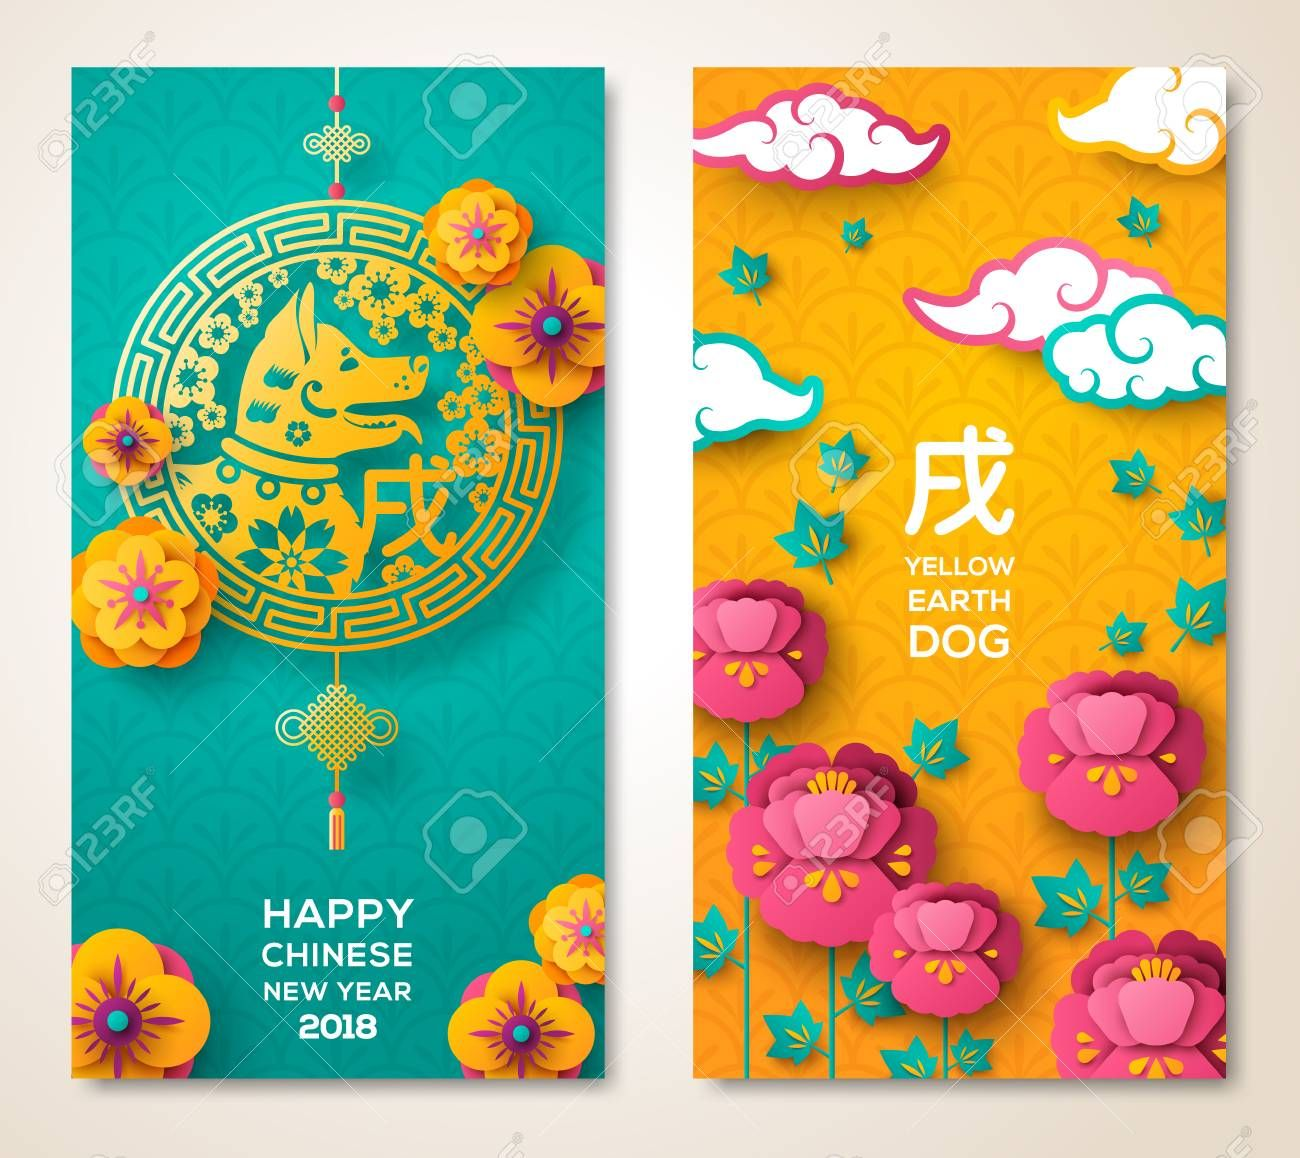 Chinese New Year Flyers Traditional Decoration With Luck Knots Chinese New Year Greeting New Year Greeting Cards Chinese New Year Card